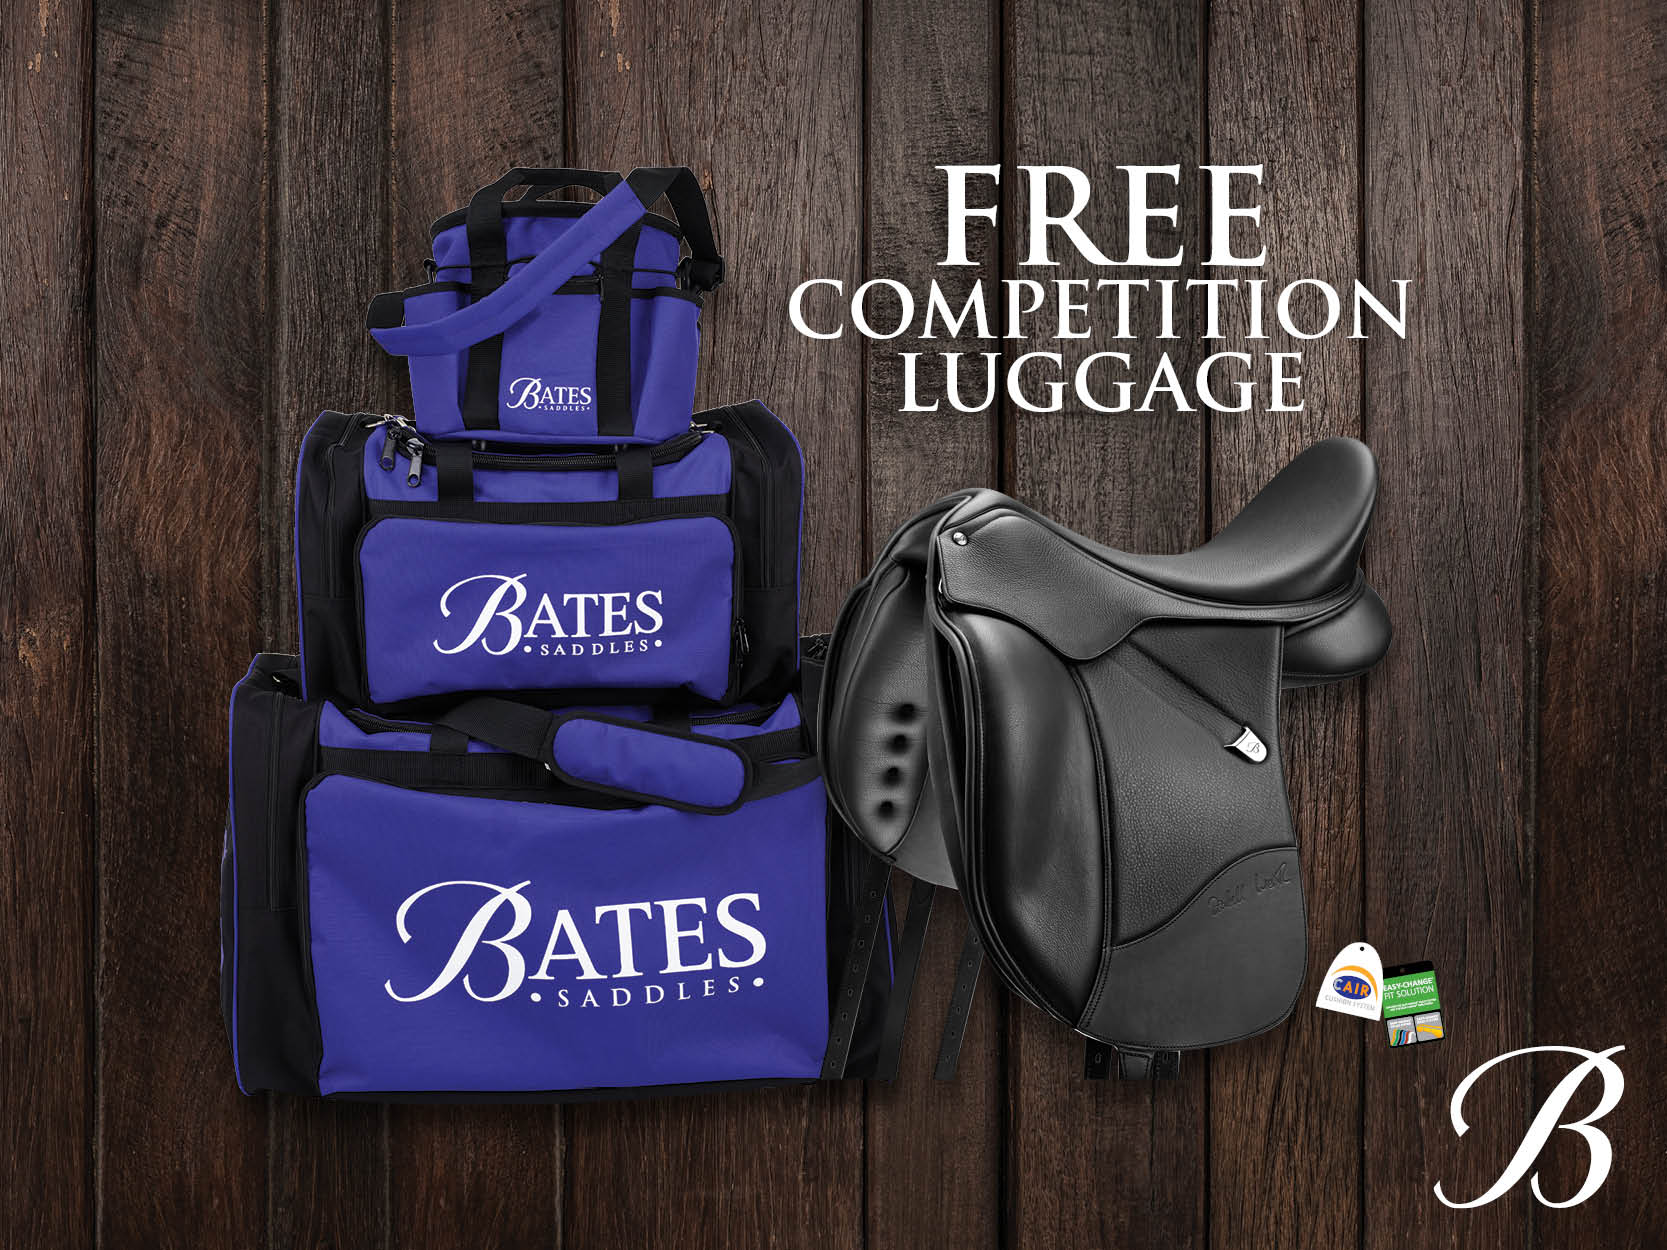 Bates Saddles: FREE Competition Luggage!*